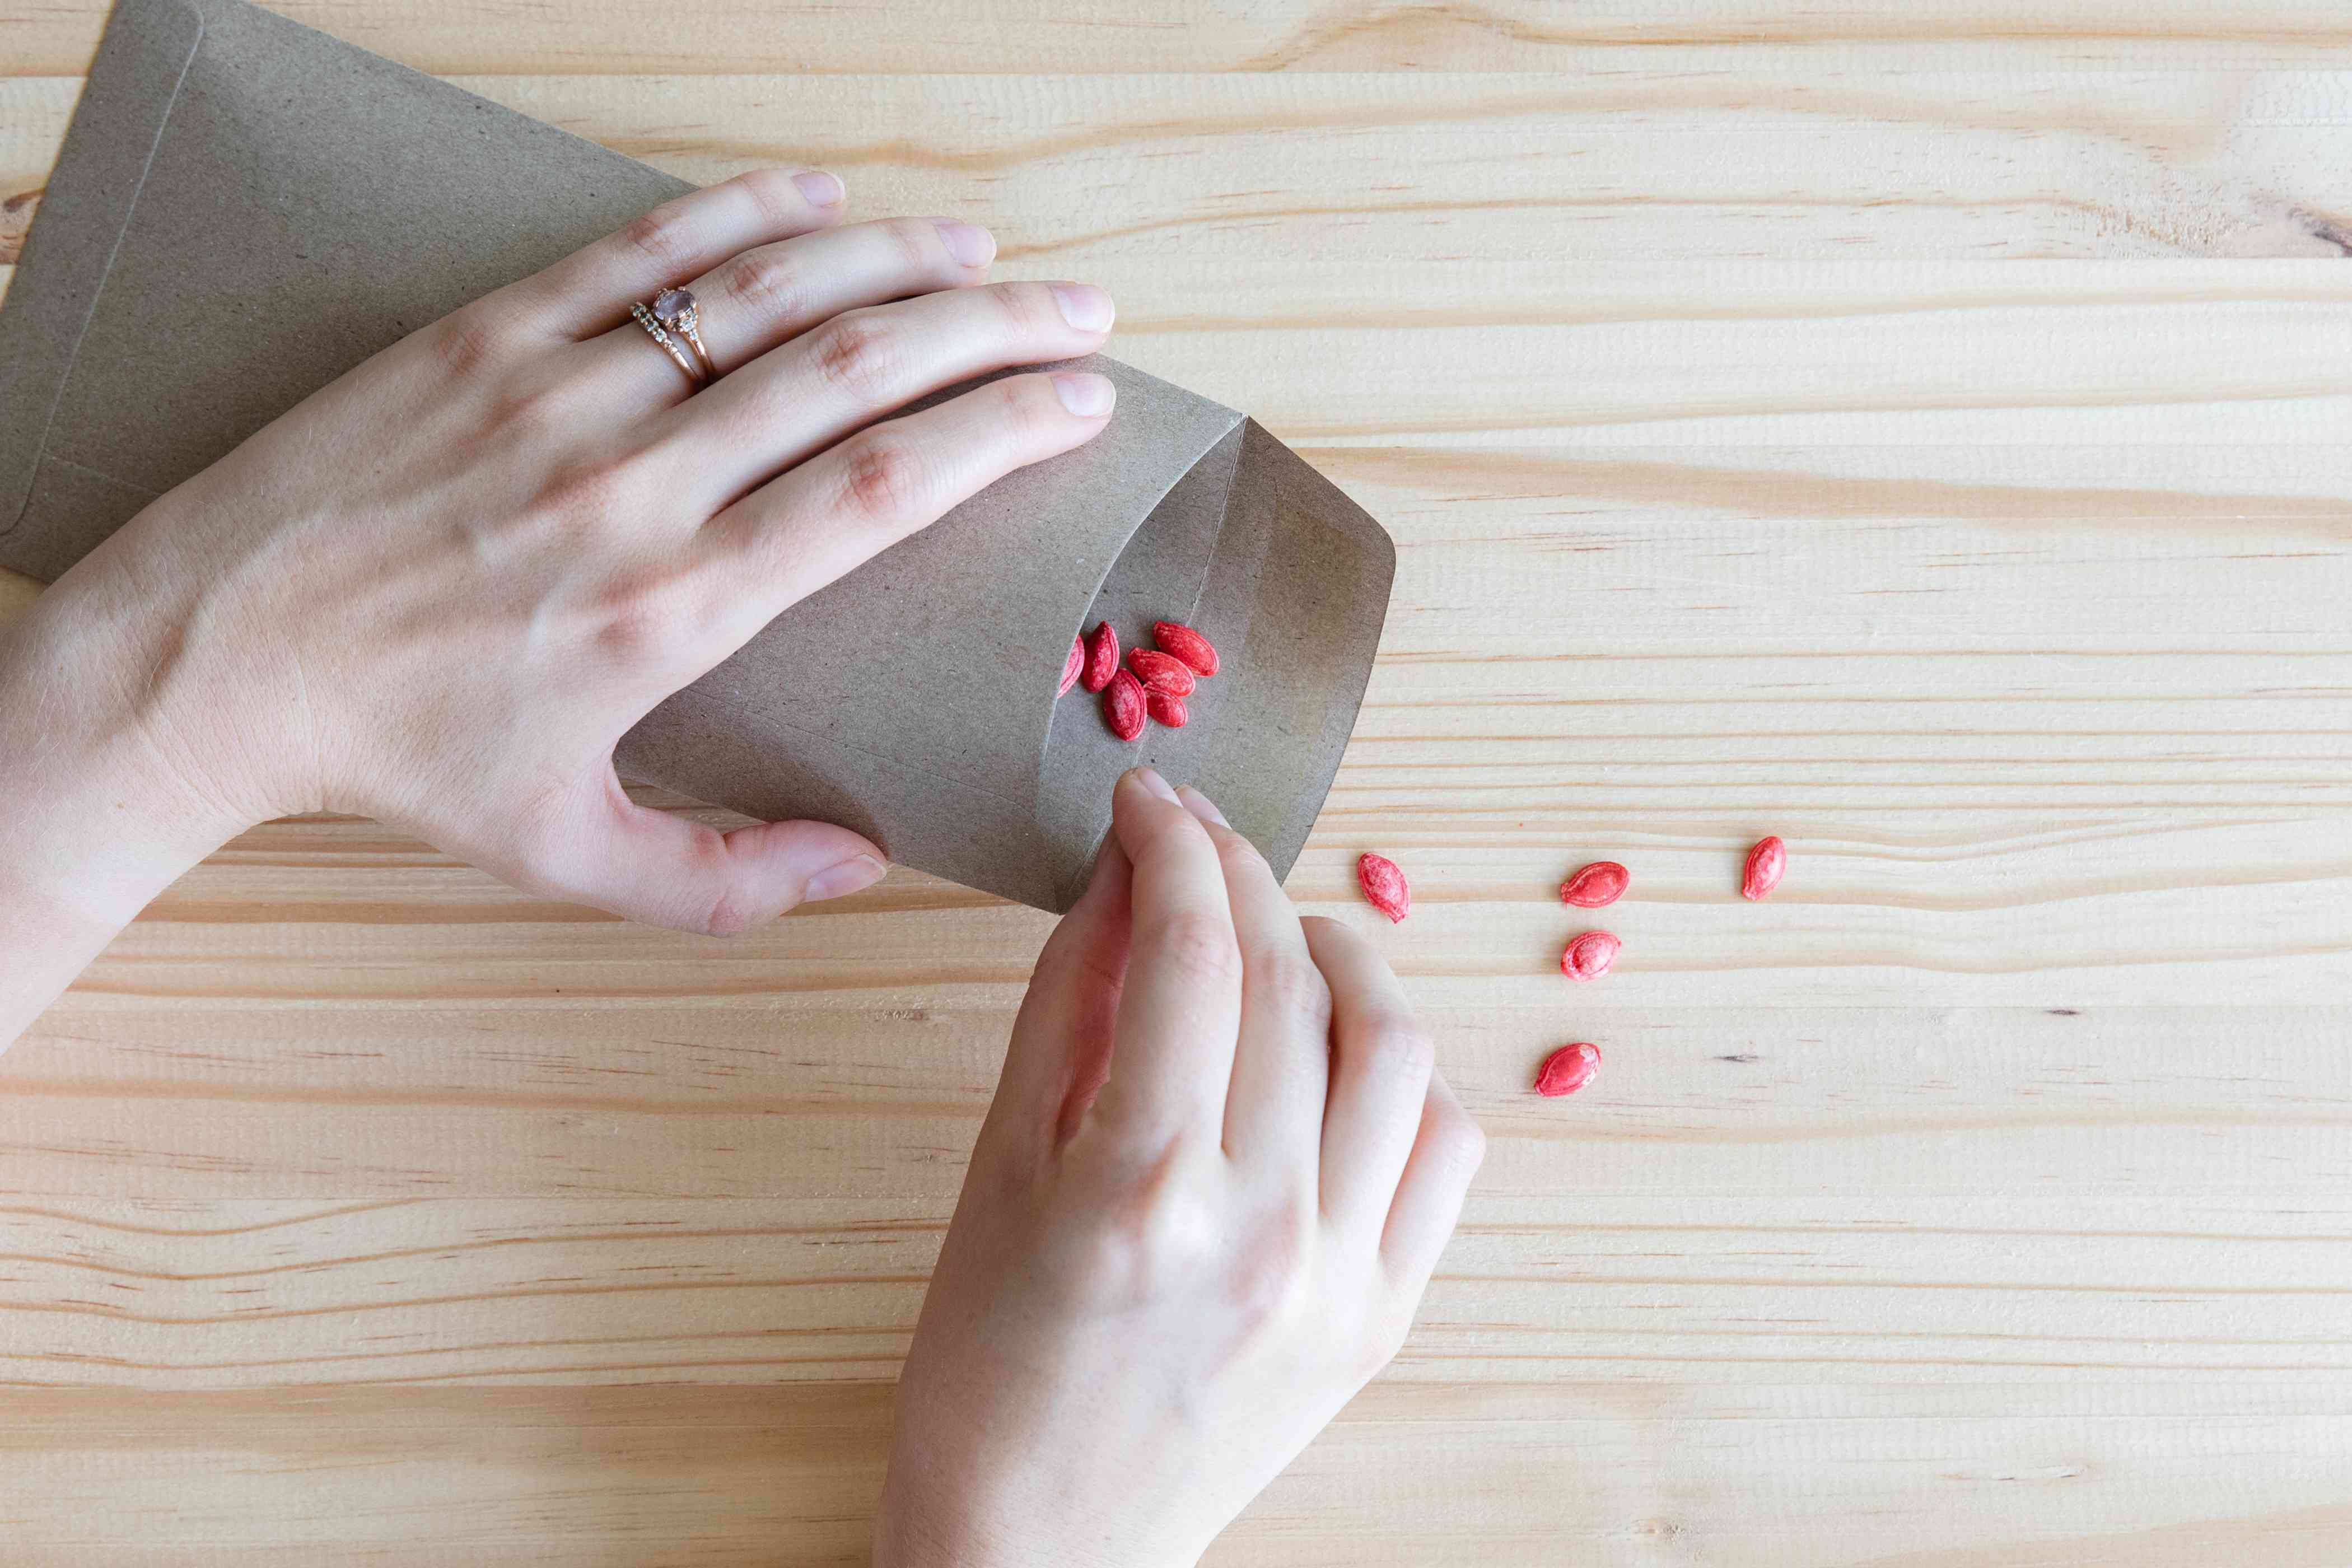 storing seeds in a dry envelope